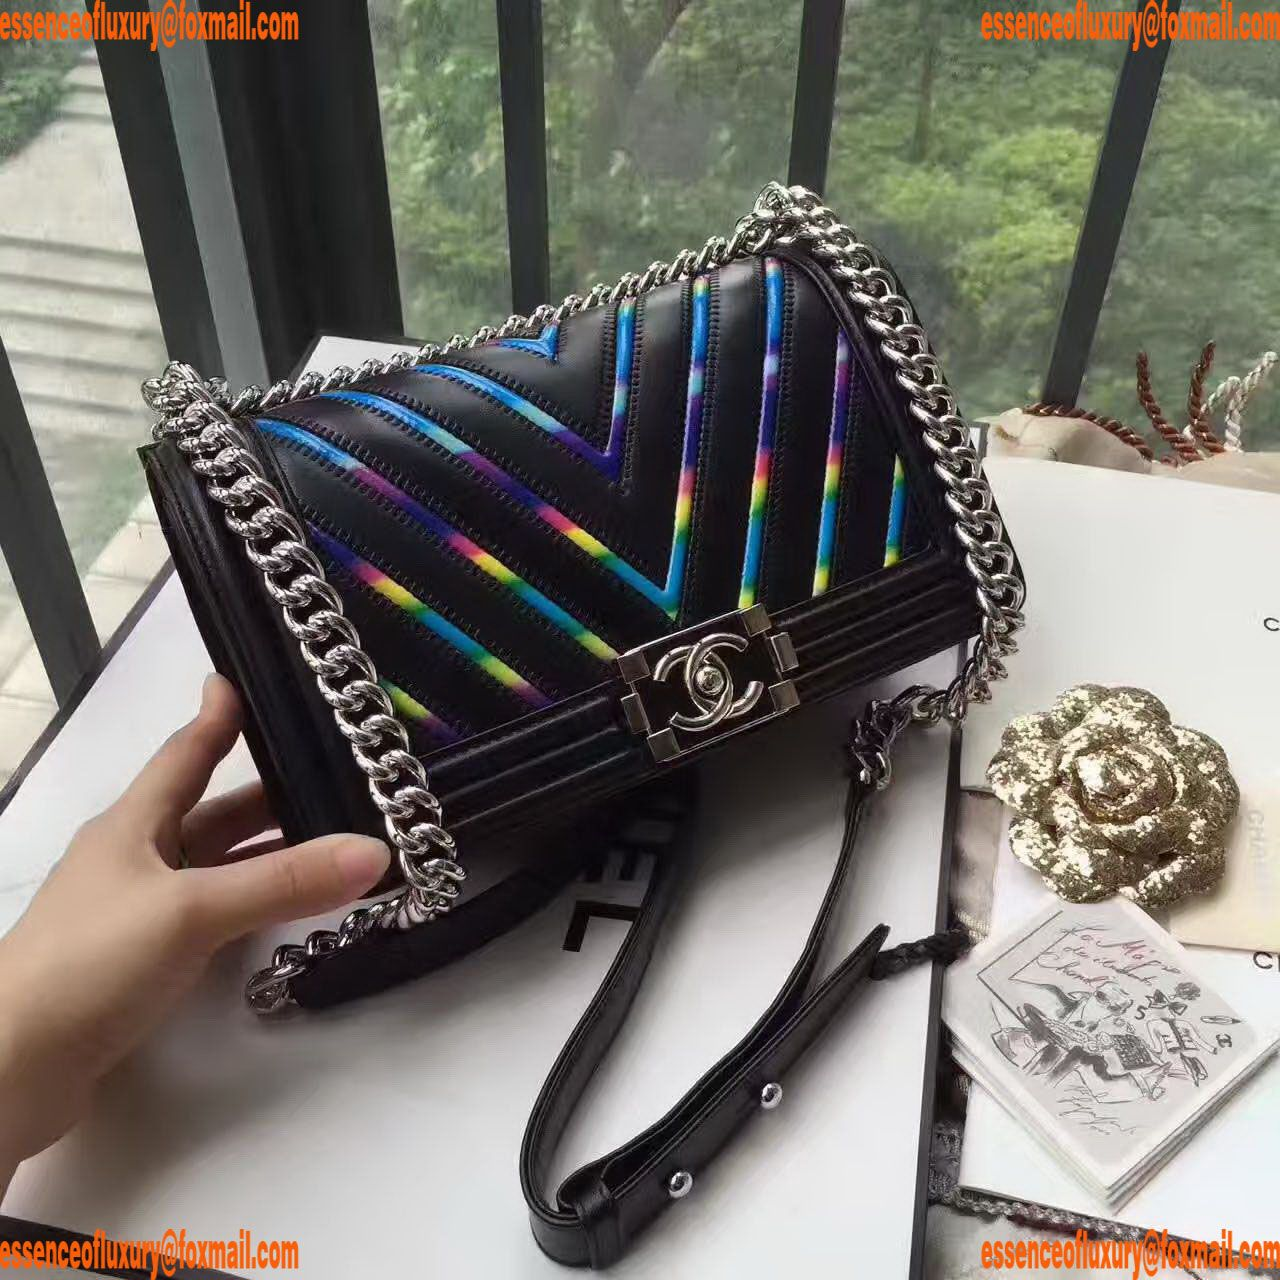 Replica Womens Handbags Chanel Iridescent PVC Leather Boy Flap Bags 25CM  A118PP800 AA15539 3bf144e4573